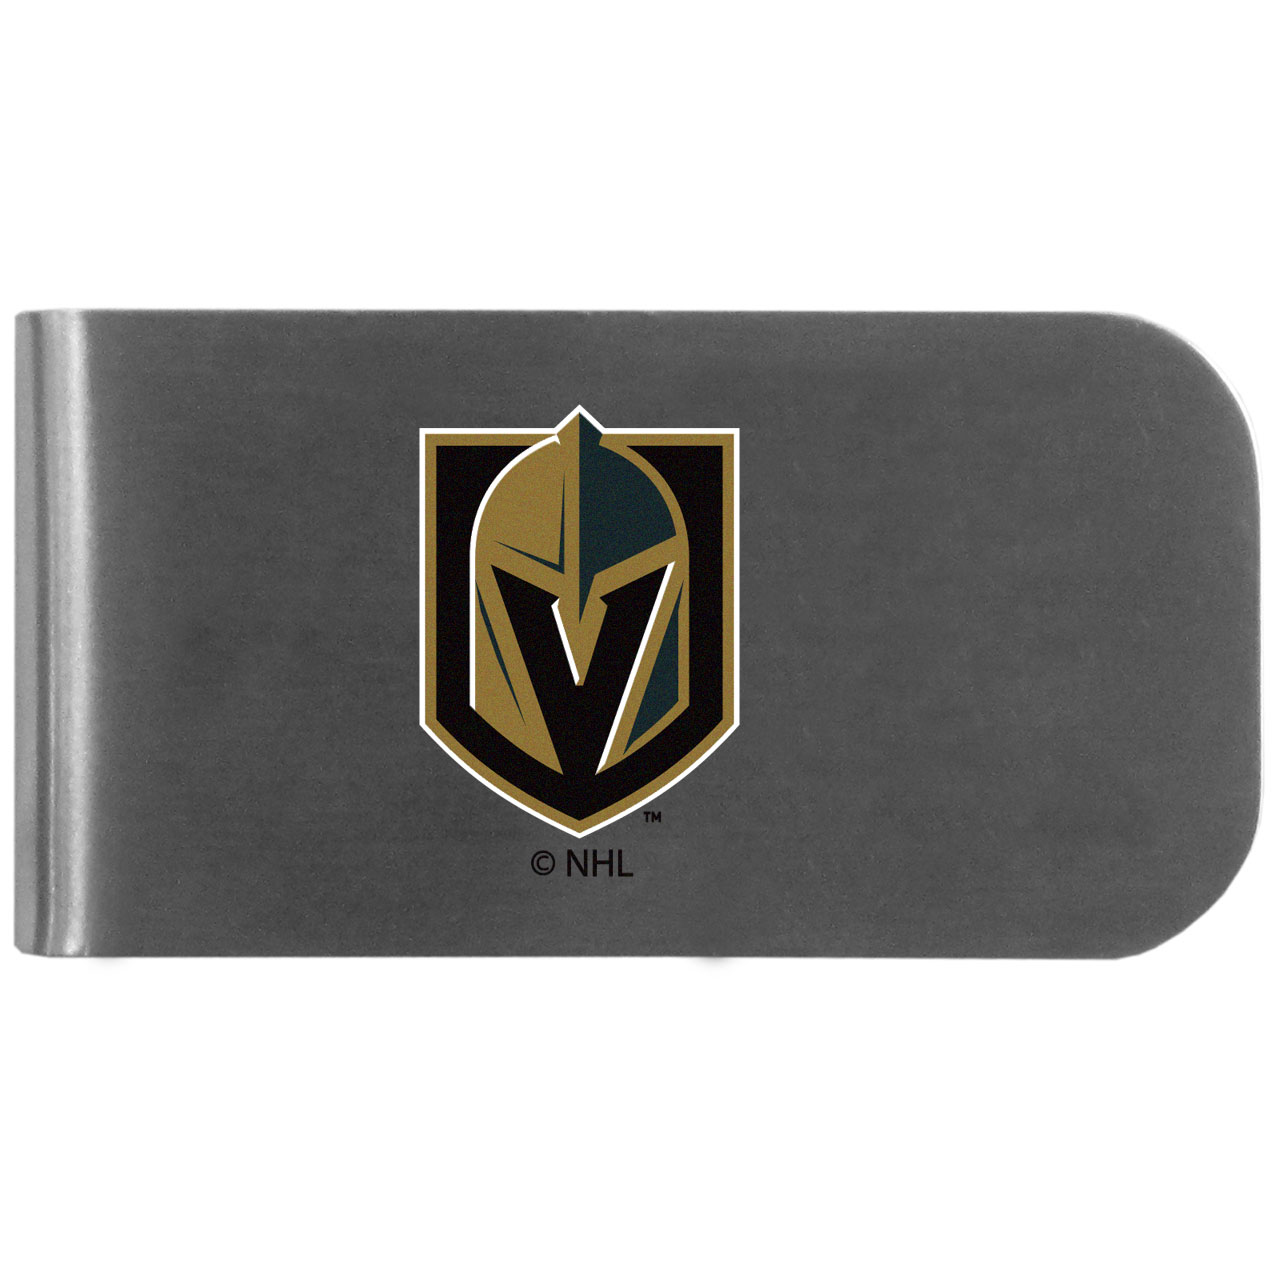 Vegas Golden Knights Logo Bottle Opener Money Clip - This unique money clip features a classic, brushed-metal finish with a handy bottle opener feature on the back. The clip has the Vegas Golden Knights logo expertly printed on the front of the clip.